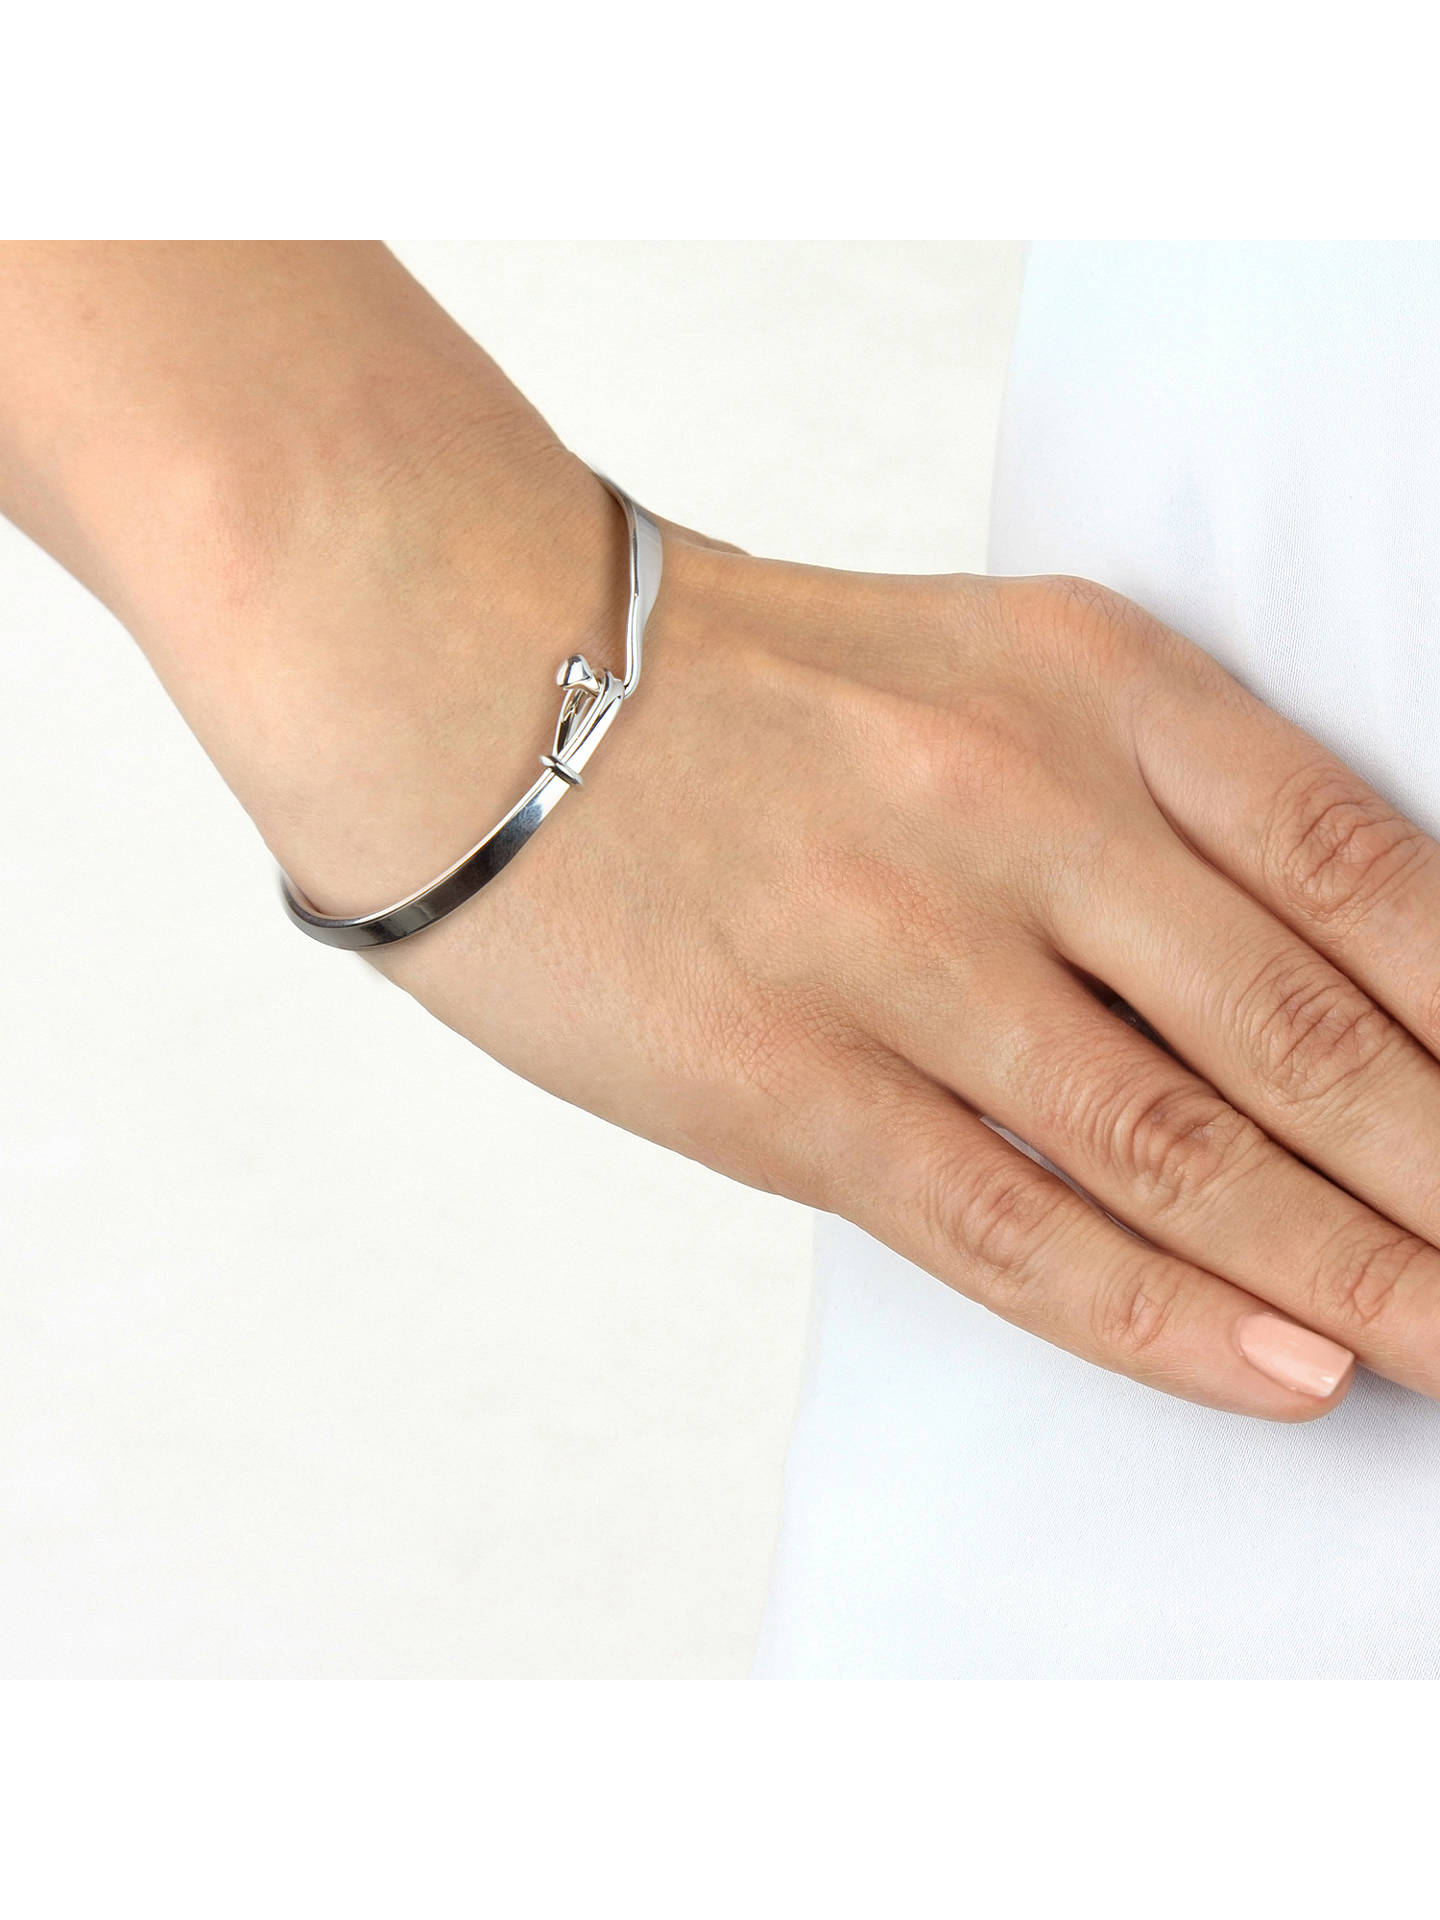 Georg Jensen Viviana Torun Bangle Silver Online At Johnlewis